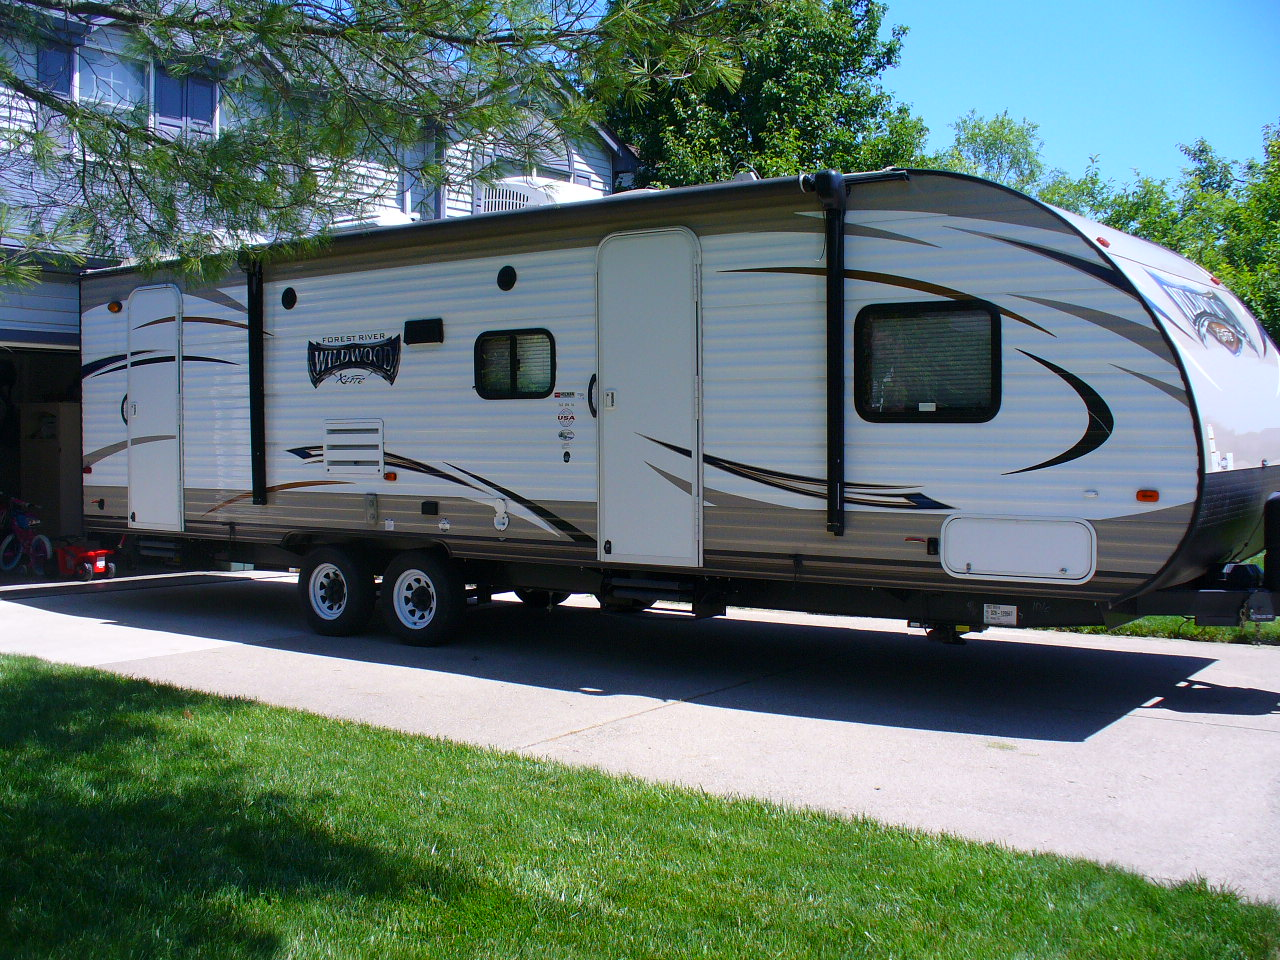 Motorhome To Travel Trailer - FMCA RV Forums – A Community